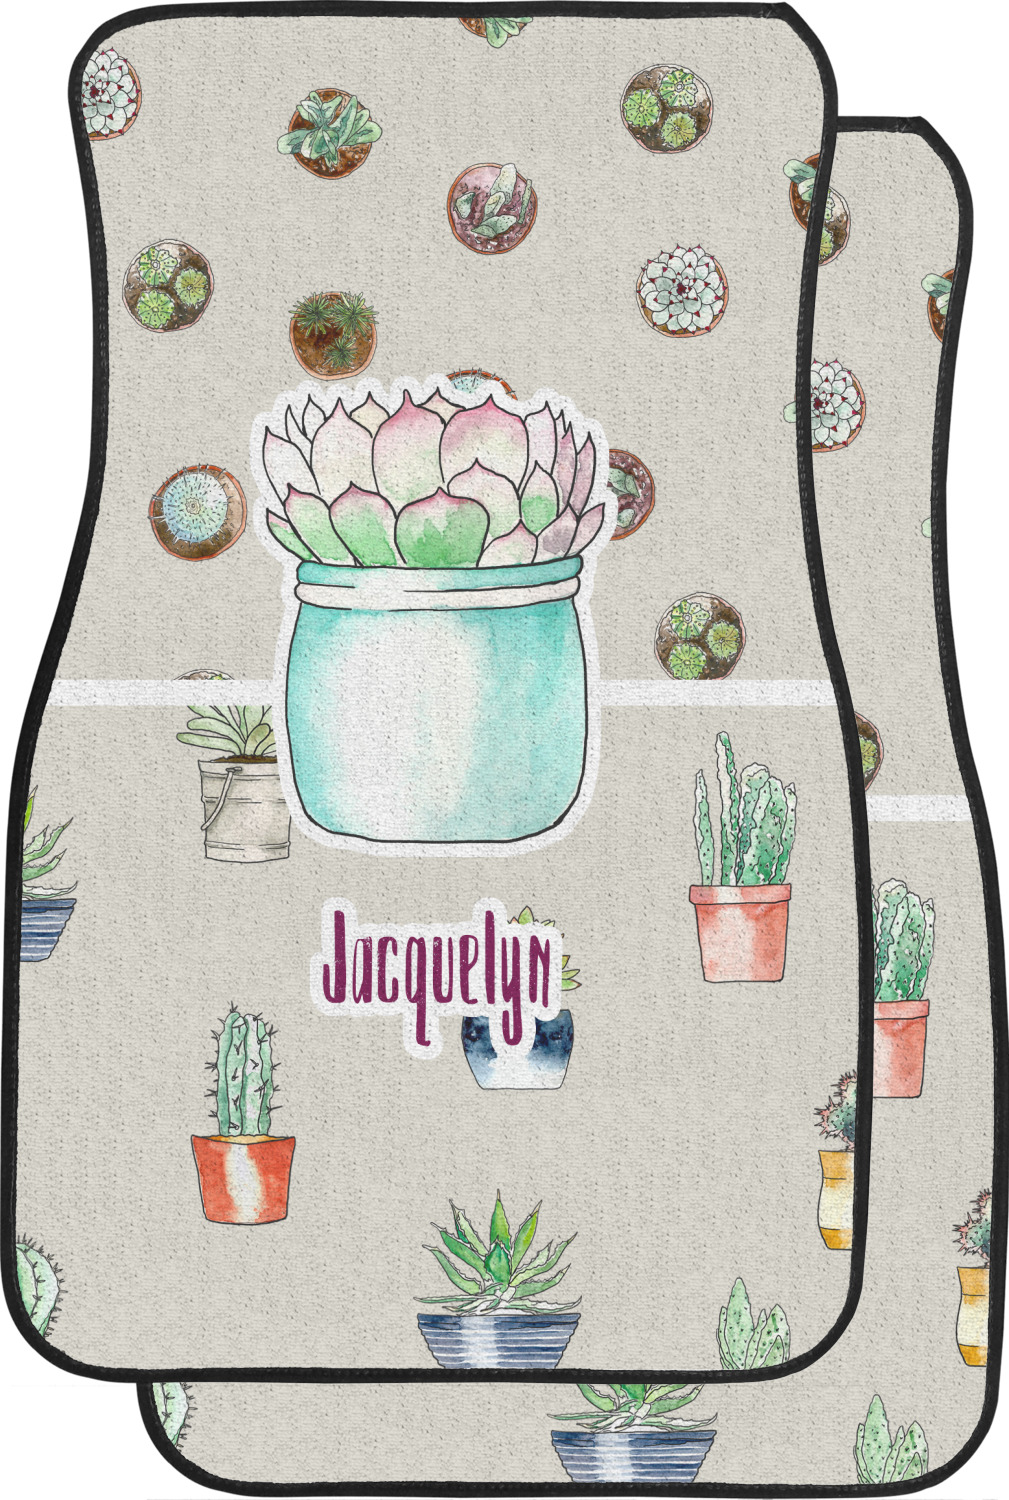 Cactus Car Floor Mats Front Seat Personalized